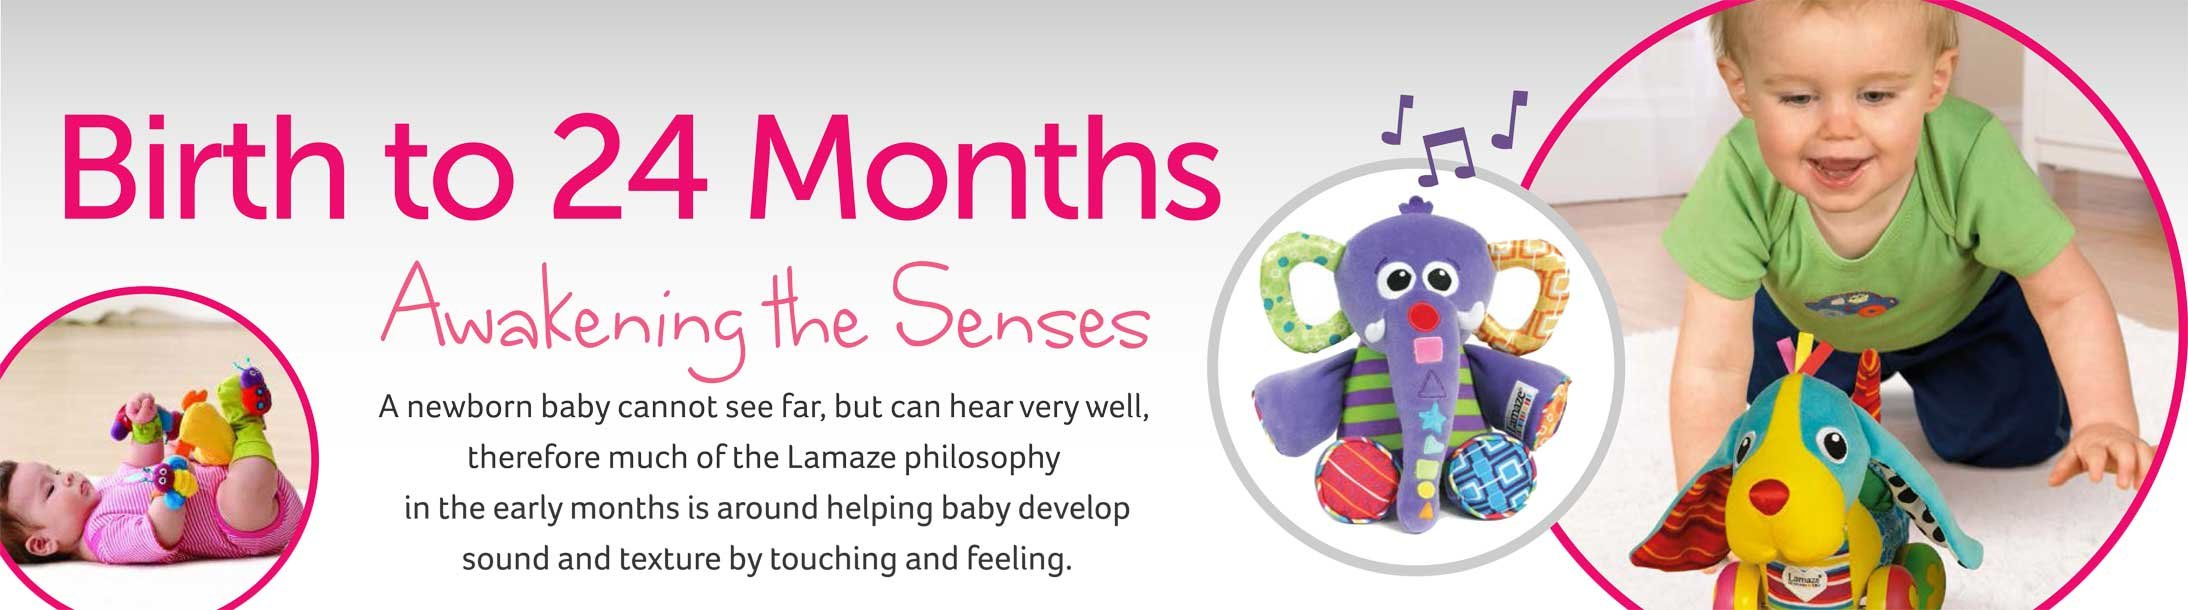 Birth to 24 months Awakening the Senses A newborn baby cannot see far, but can hear very well, therefore much of the Lamaze philosophy in the early months is around helping baby develop sound and texture by touching and feeling